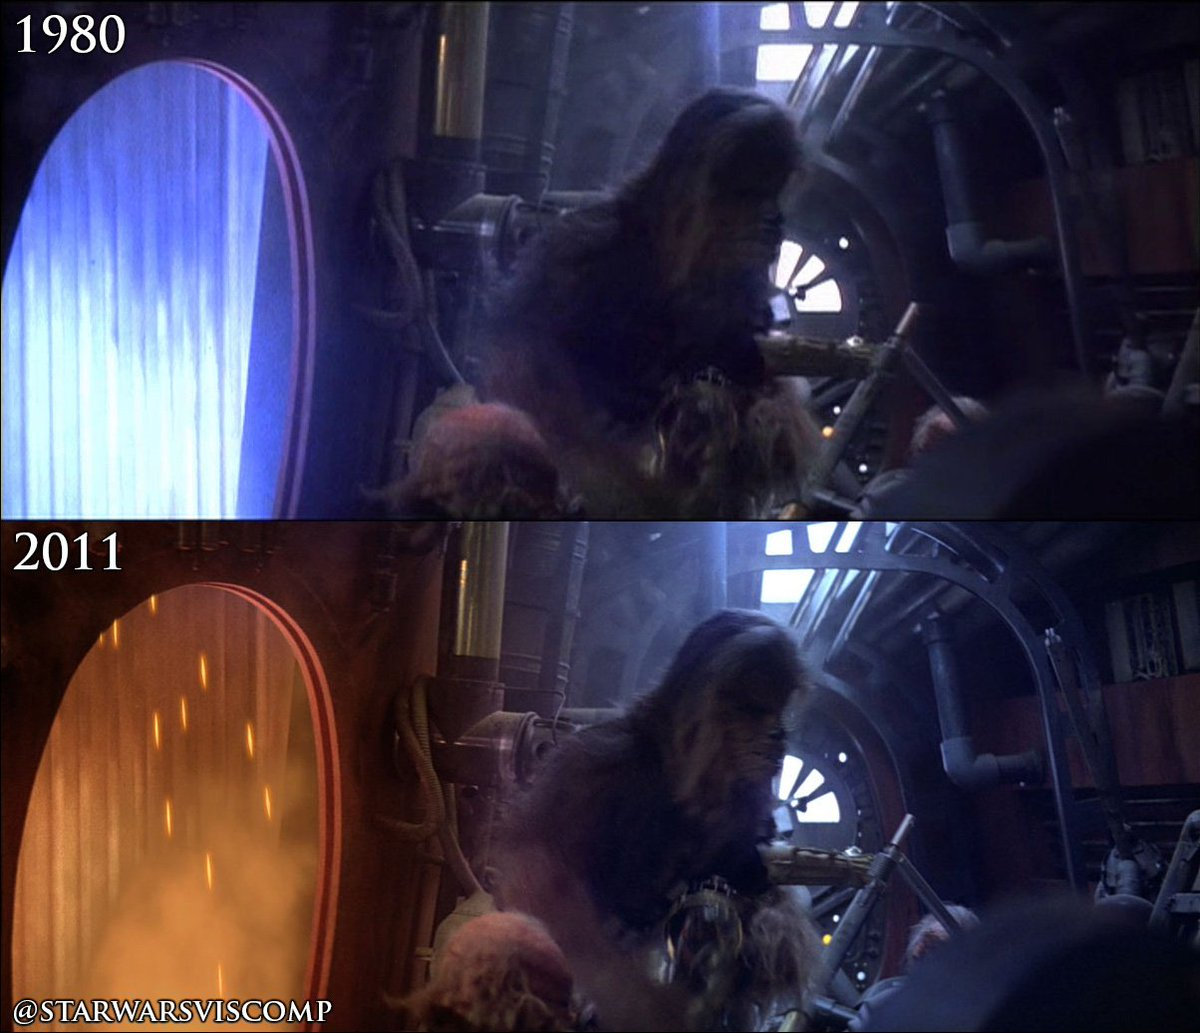 Star Wars Visual Comparisons A Twitter For The Blu Ray Possible 3d Release Sparks Smoke Were Added To The Junk Furnace Parts Of The Shot Have Been Slightly Color Retimed To Match